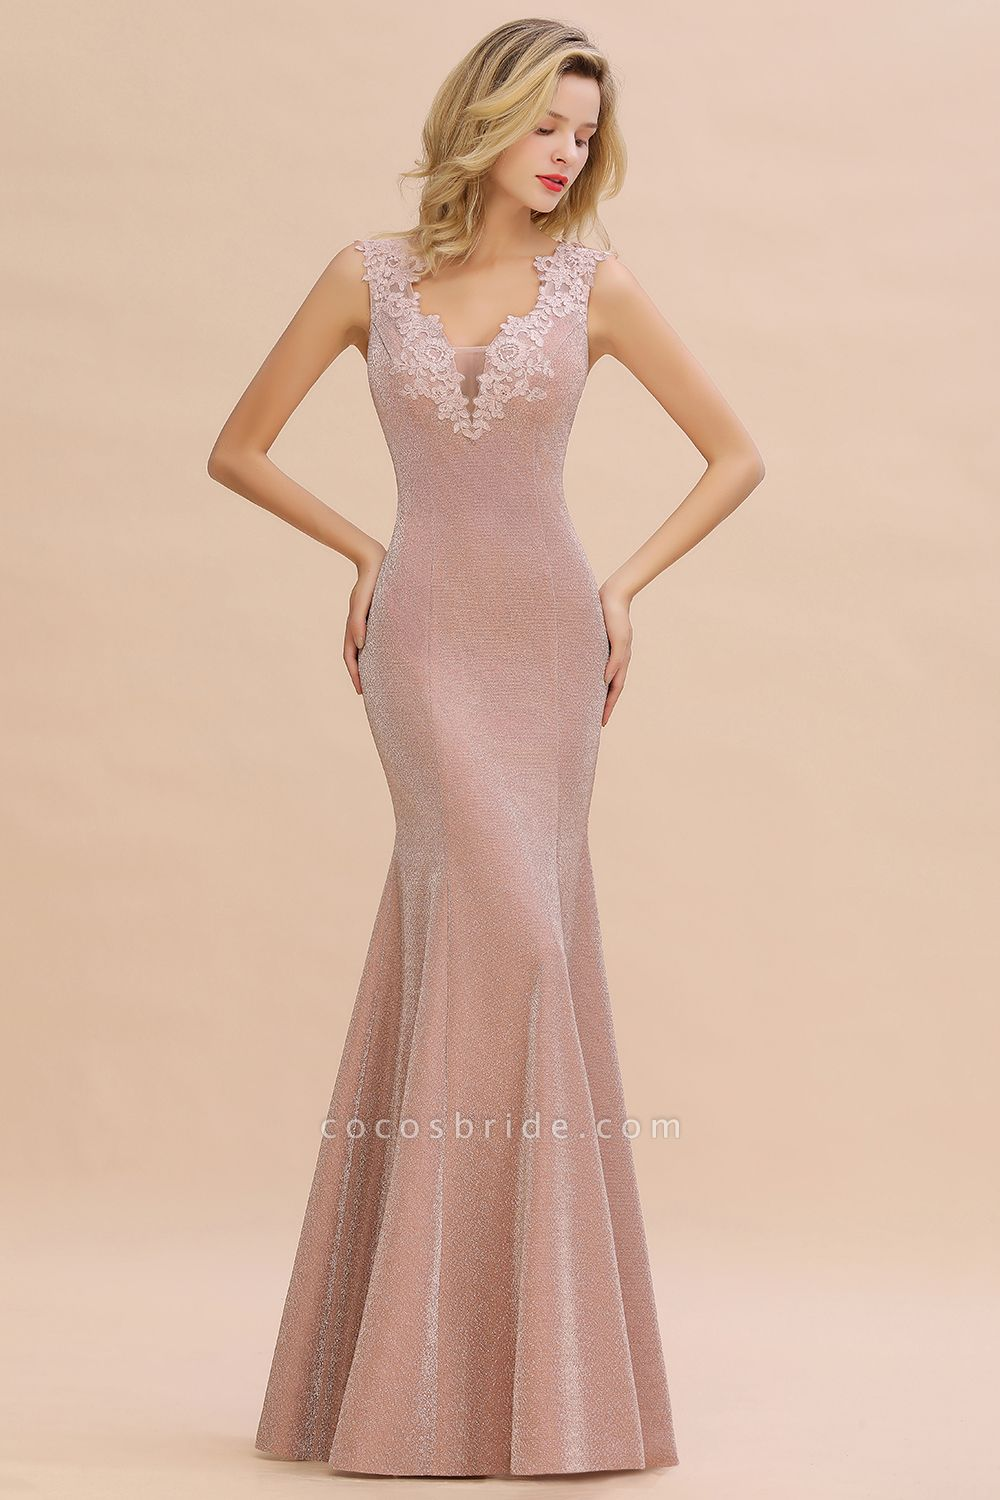 Fascinating V-neck Lace Mermaid Evening Dress